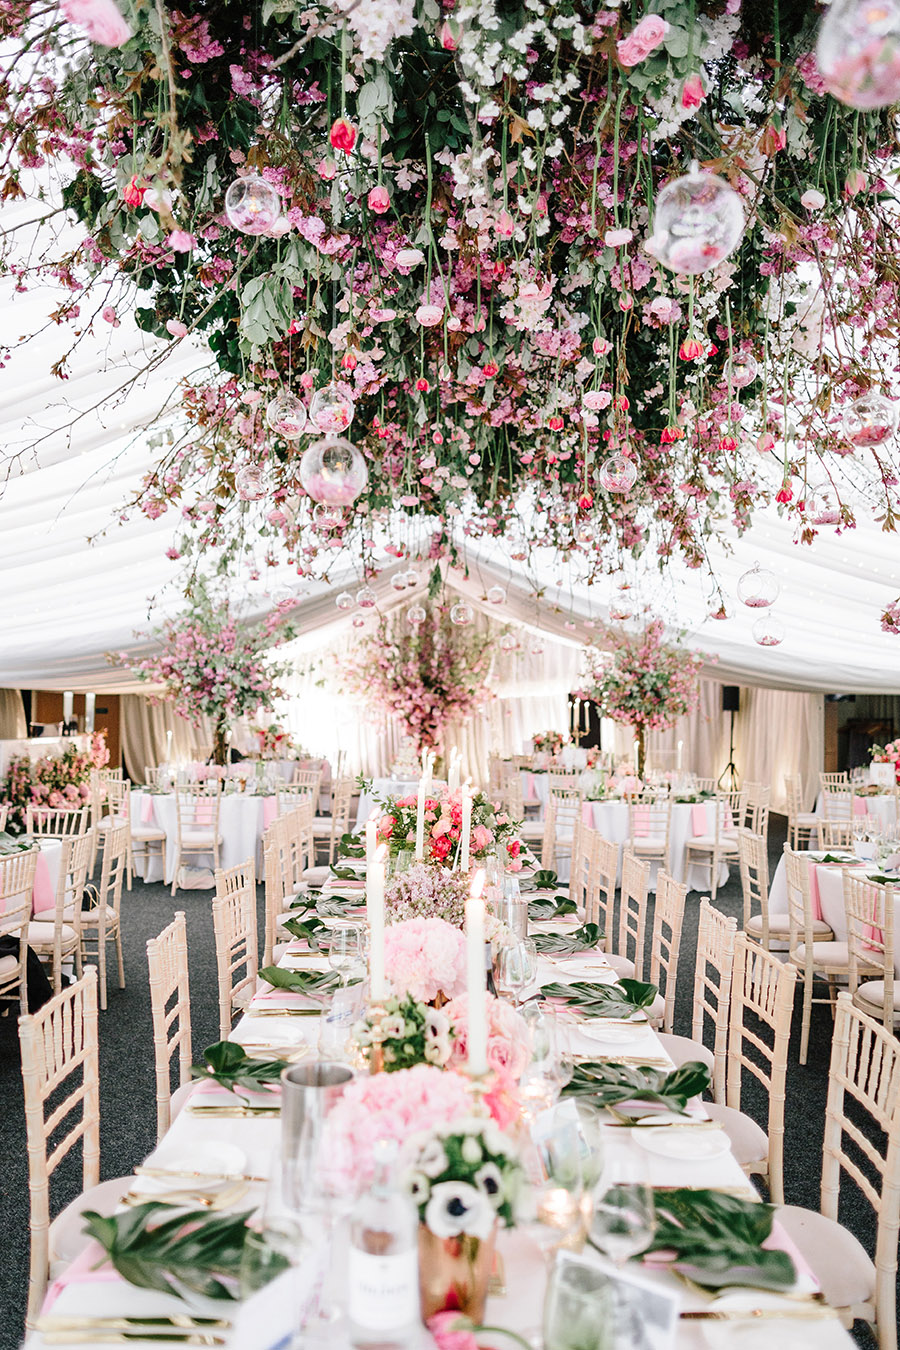 Incredible florals for Maryanne & Adam's beautiful Chippenham Park Hall wedding, with images by Nick + Maria (26)